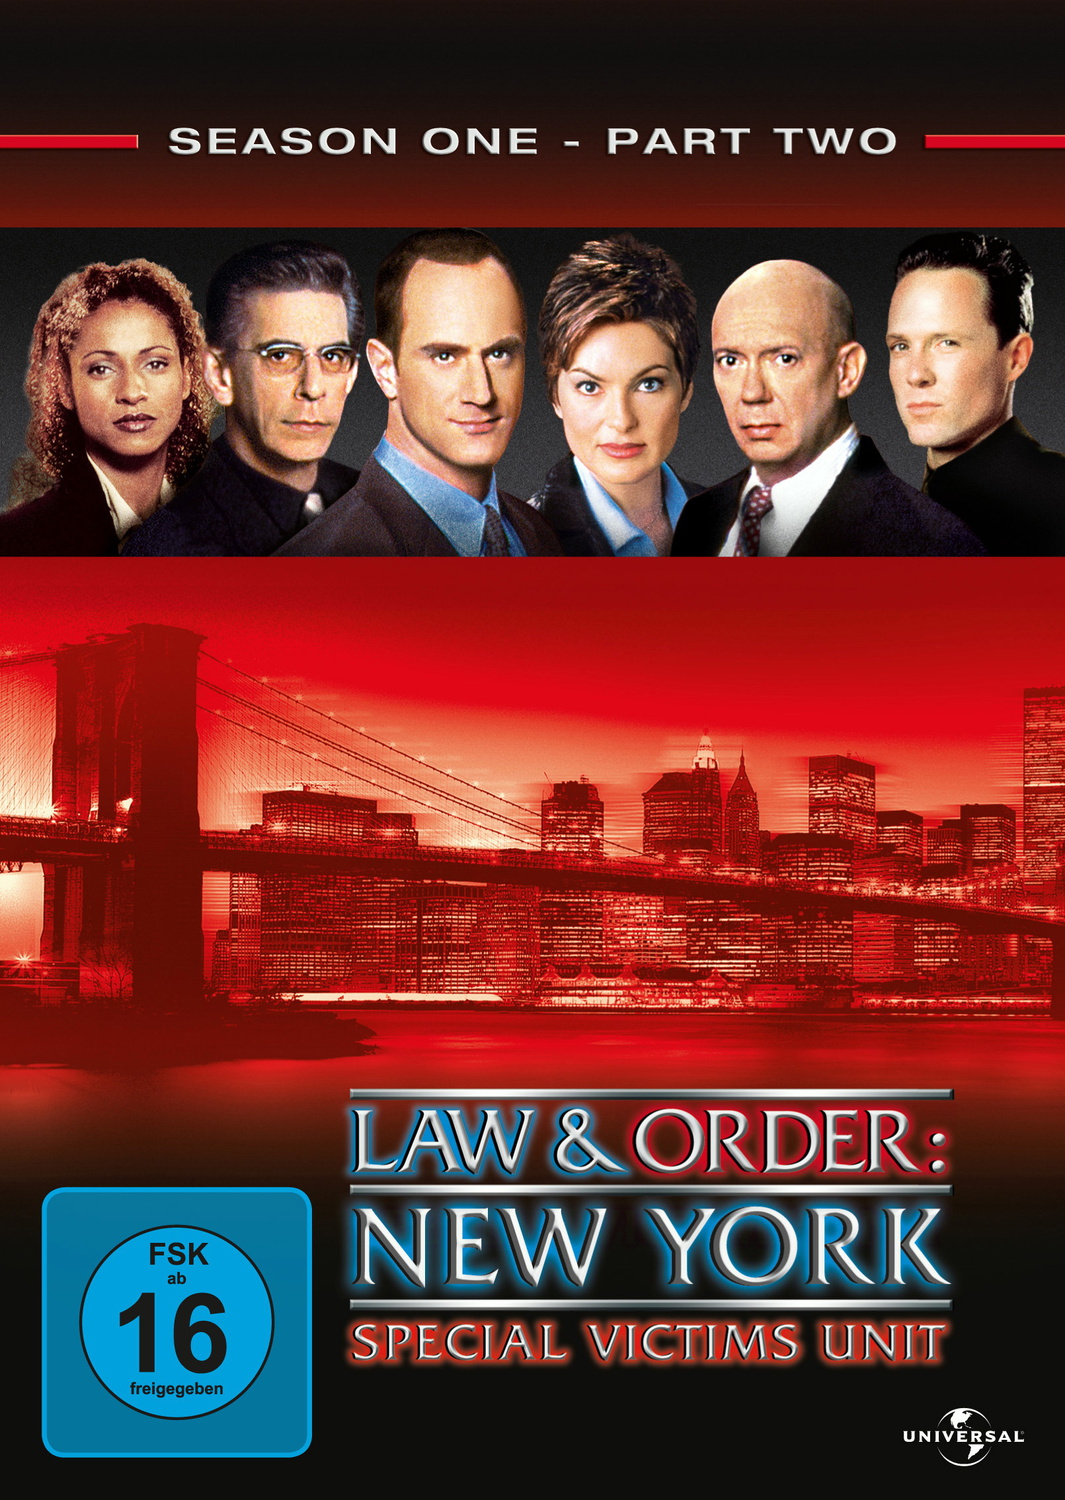 Law & Order: New York - Special Victims Unit 1.2